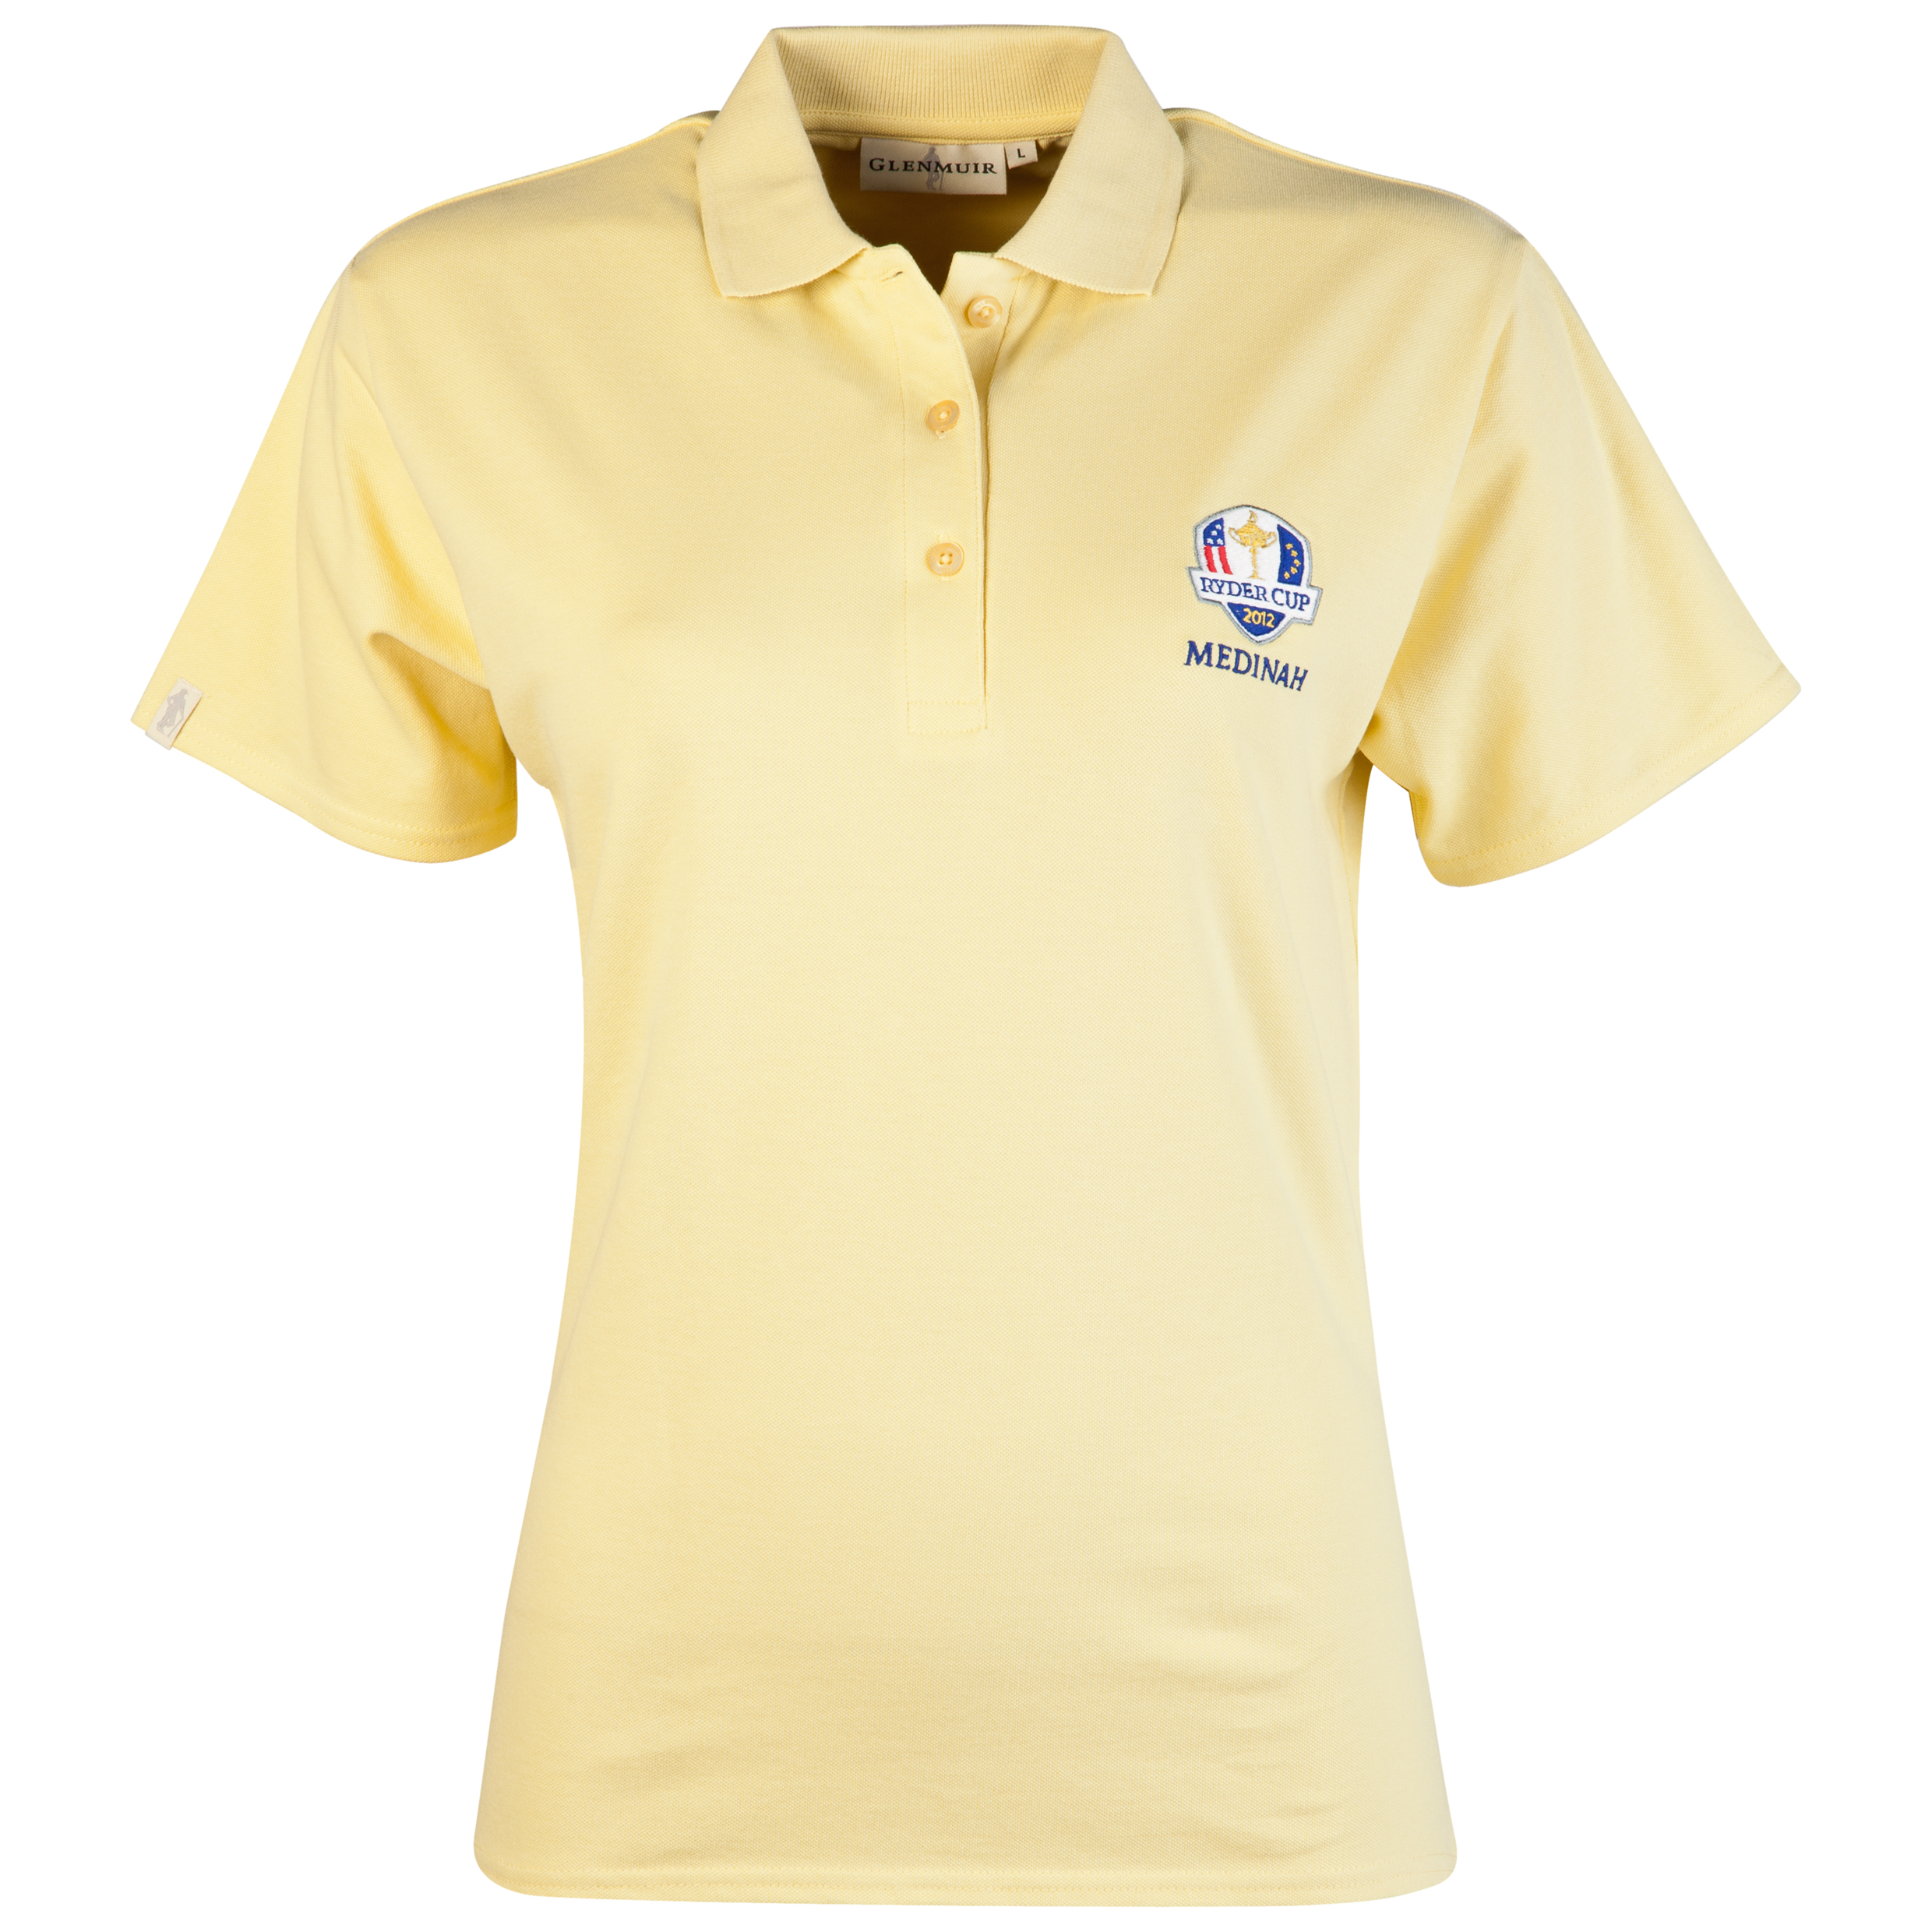 The Ryder Cup Medinah 2012 Glenmuir Sophie Women's Polo - Light Yellow